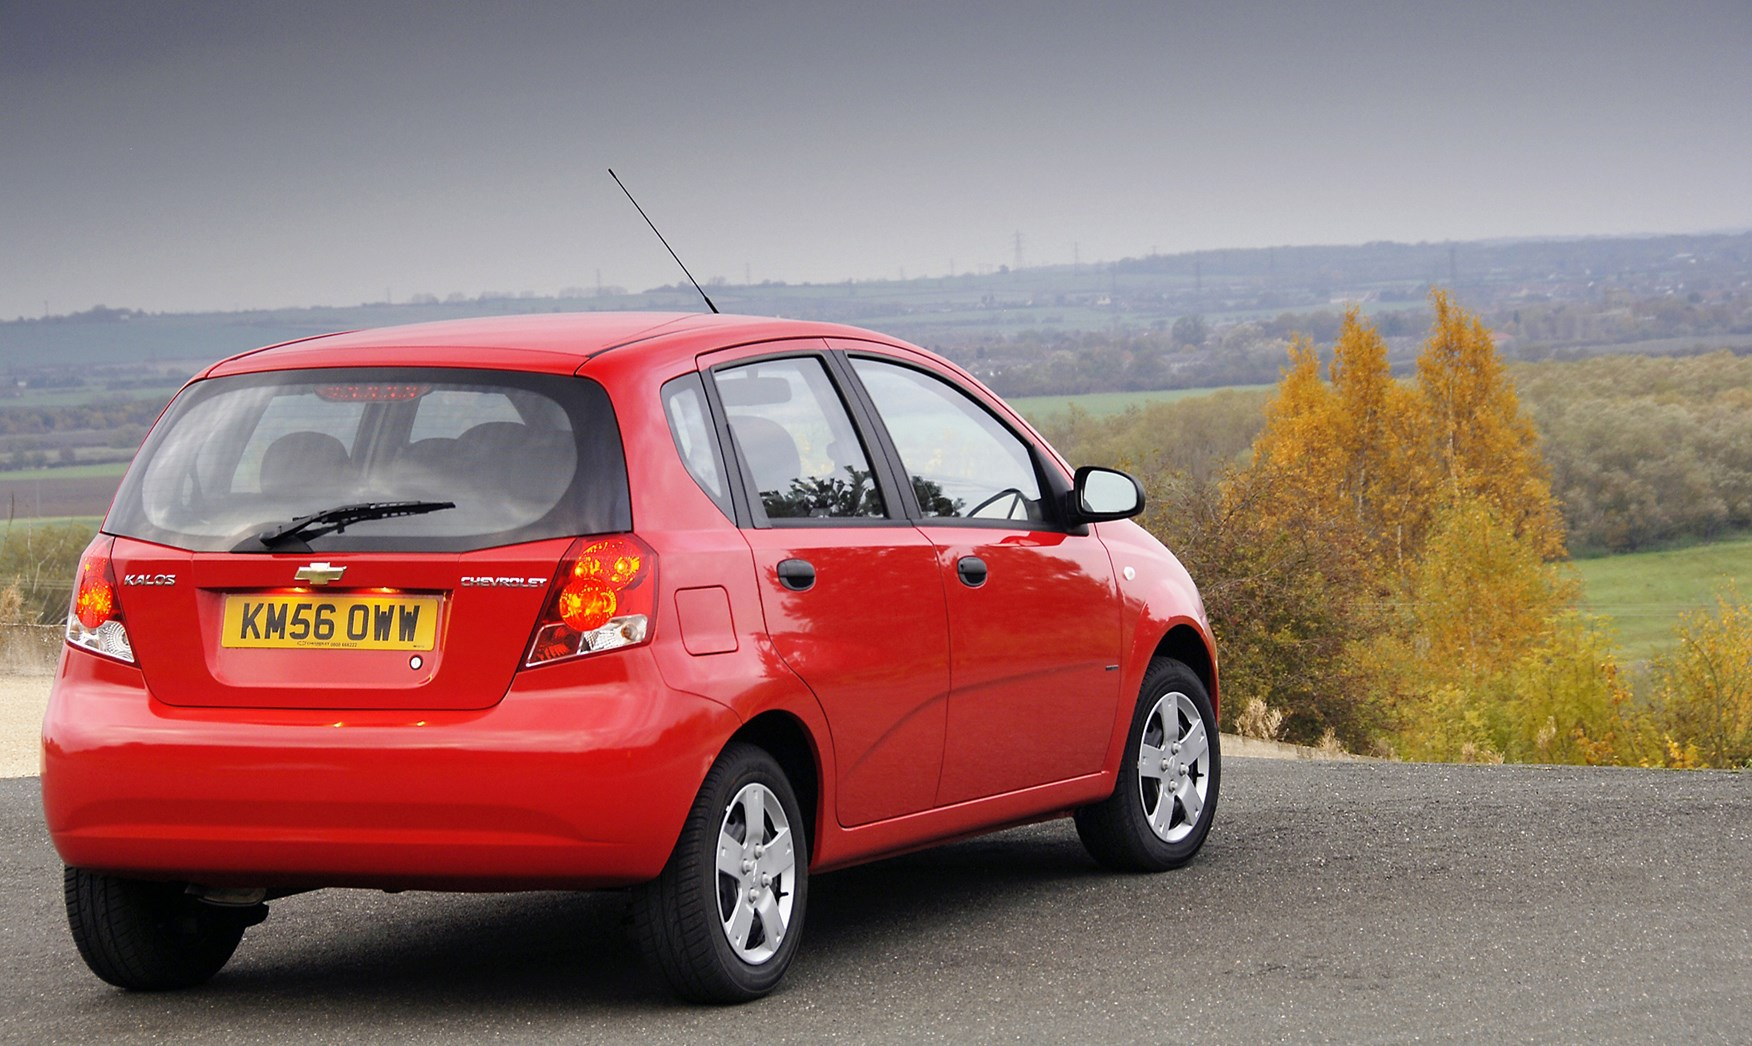 Chevrolet Kalos Hatchback Review (2005 - 2008) | Parkers